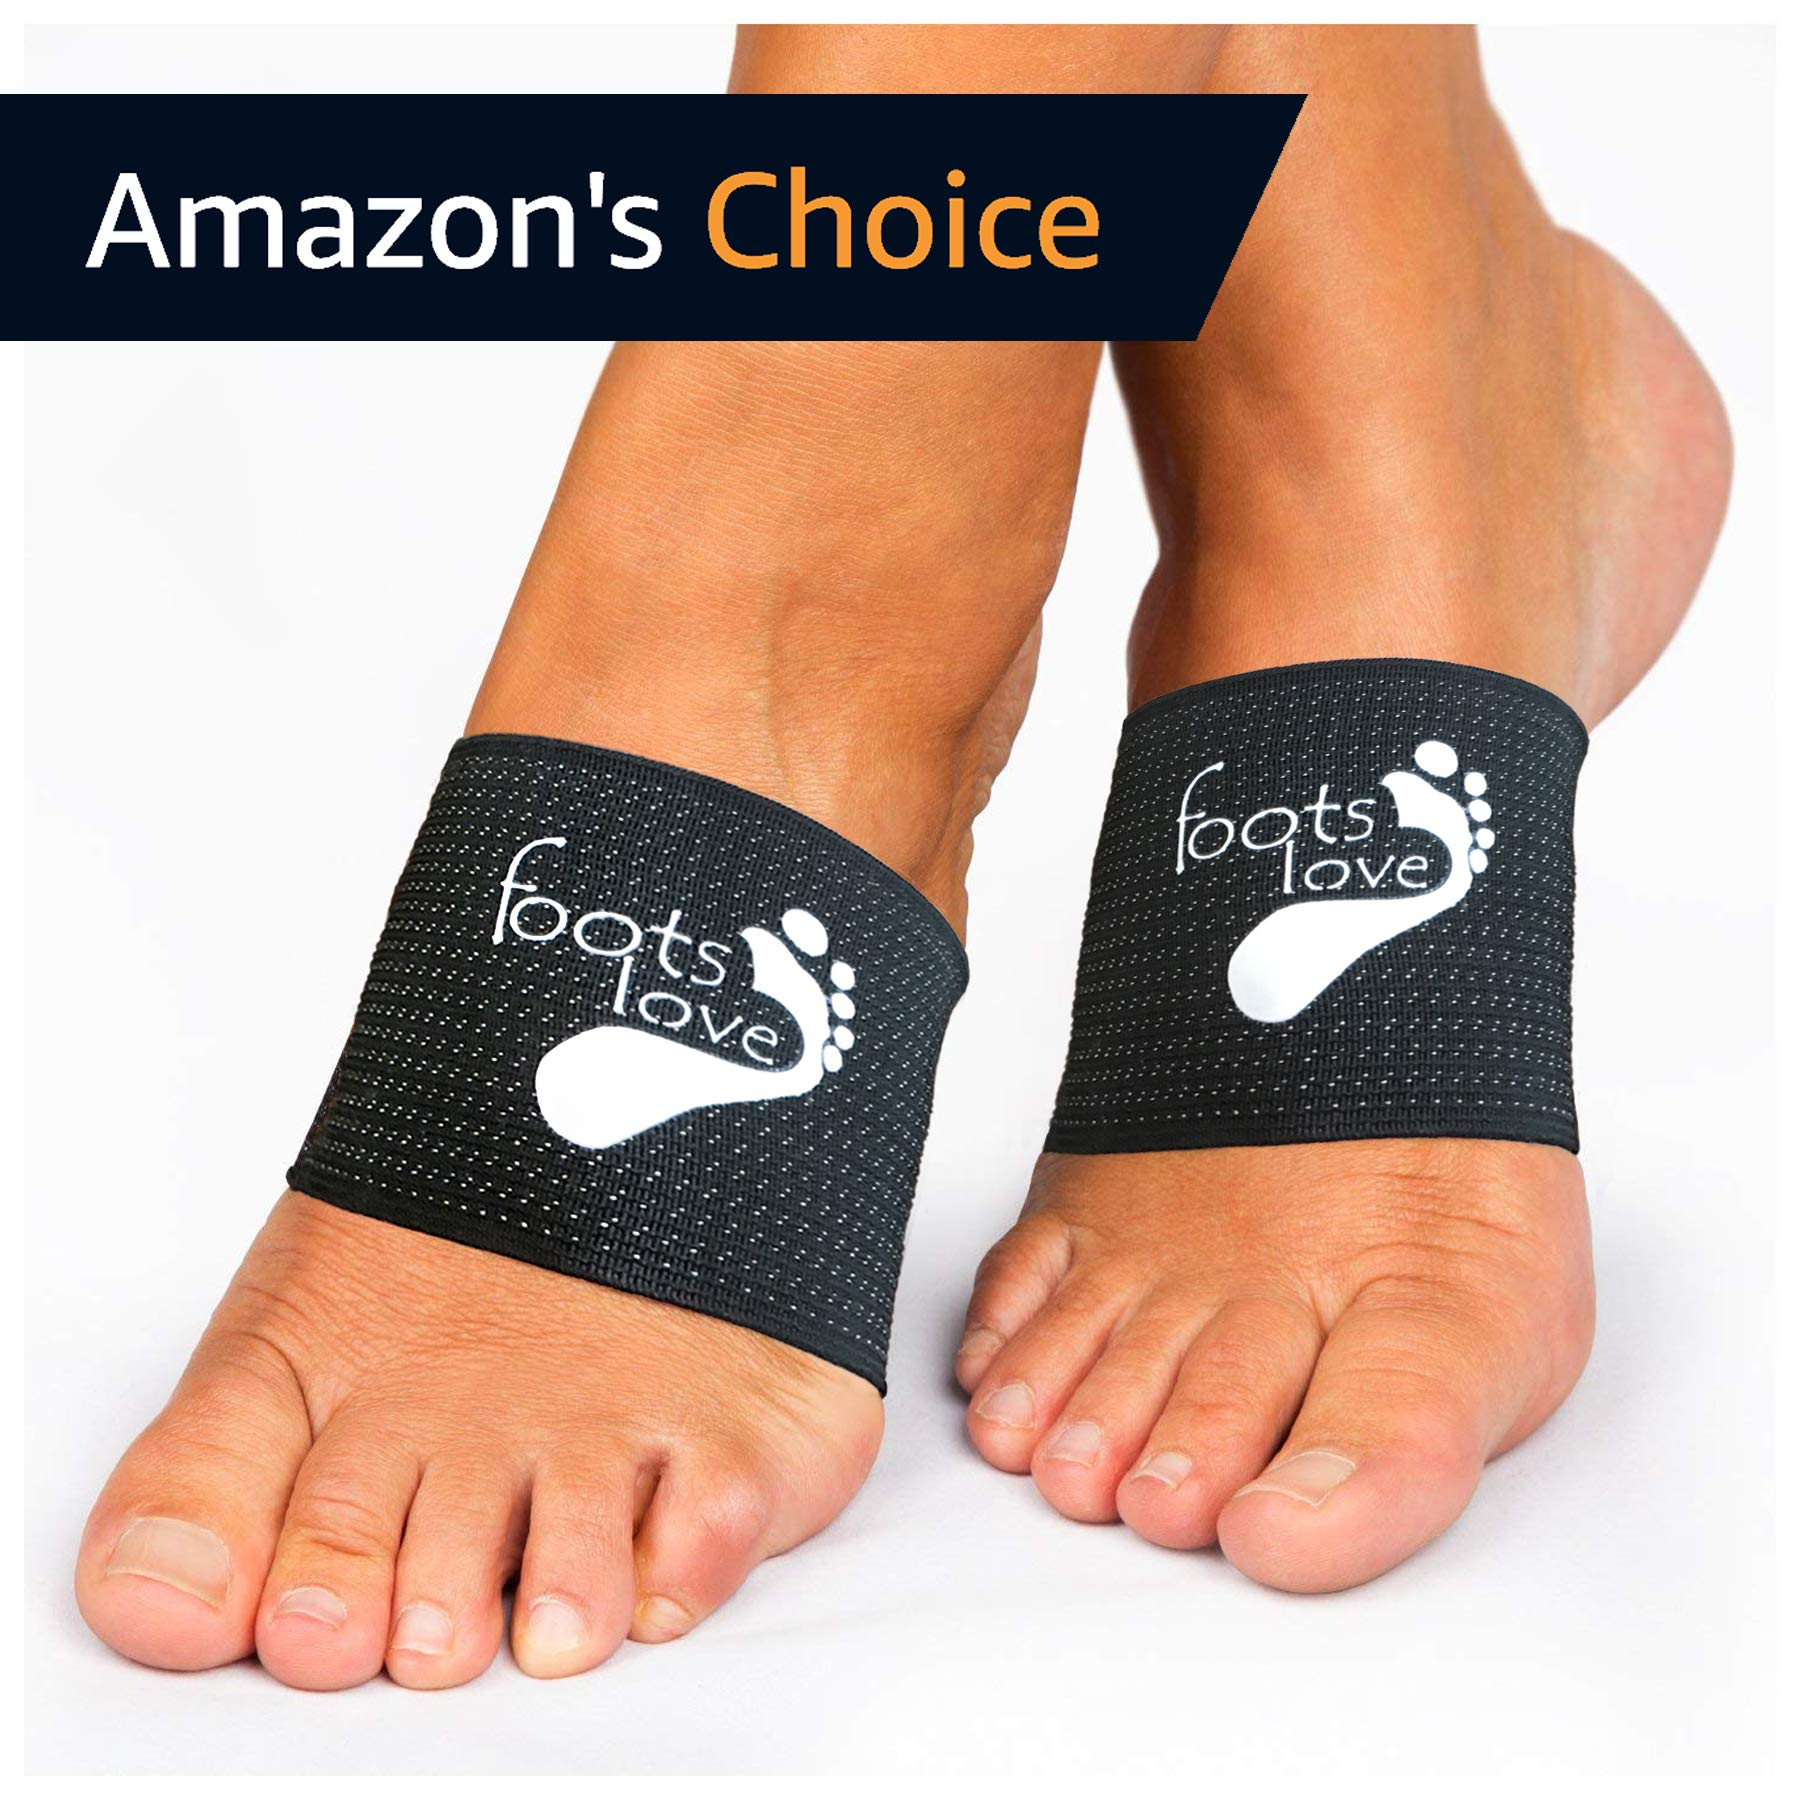 Foots Love. ❤ Plantar Fasciitis Arch Support - Compression Copper Braces/Sleeves. Recommend for Flat Feet, Heel Spurs and High Arch Pain Relief. We Started The Trend and Still The Best…